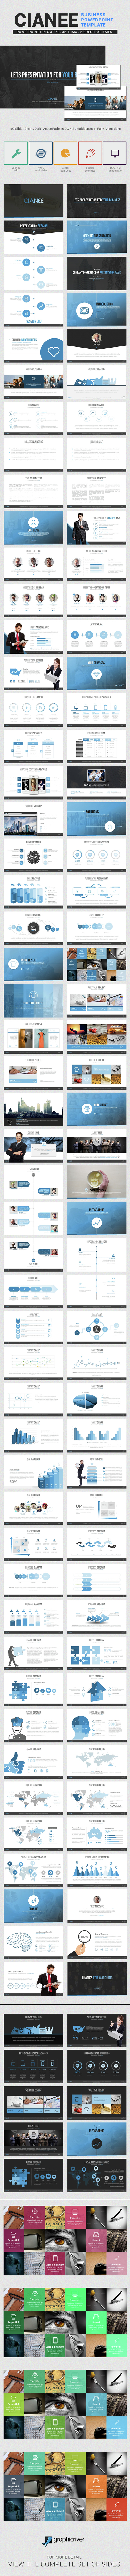 Cianee Business Powerpoint Template - Business PowerPoint Templates